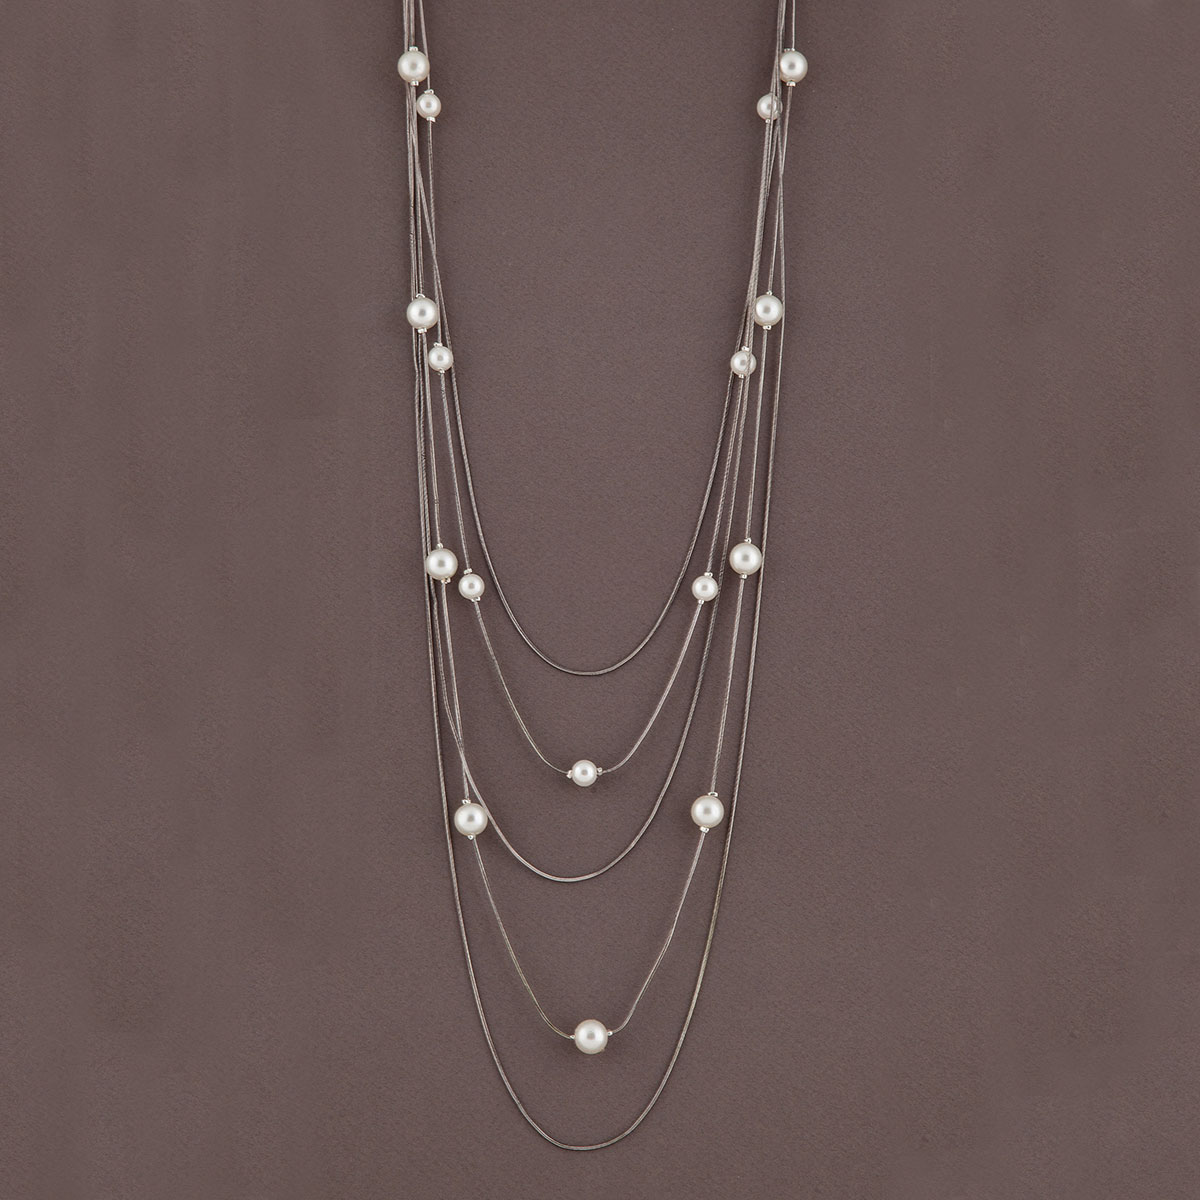 Antique Silver Multi Strand Chain Necklace with Pearls